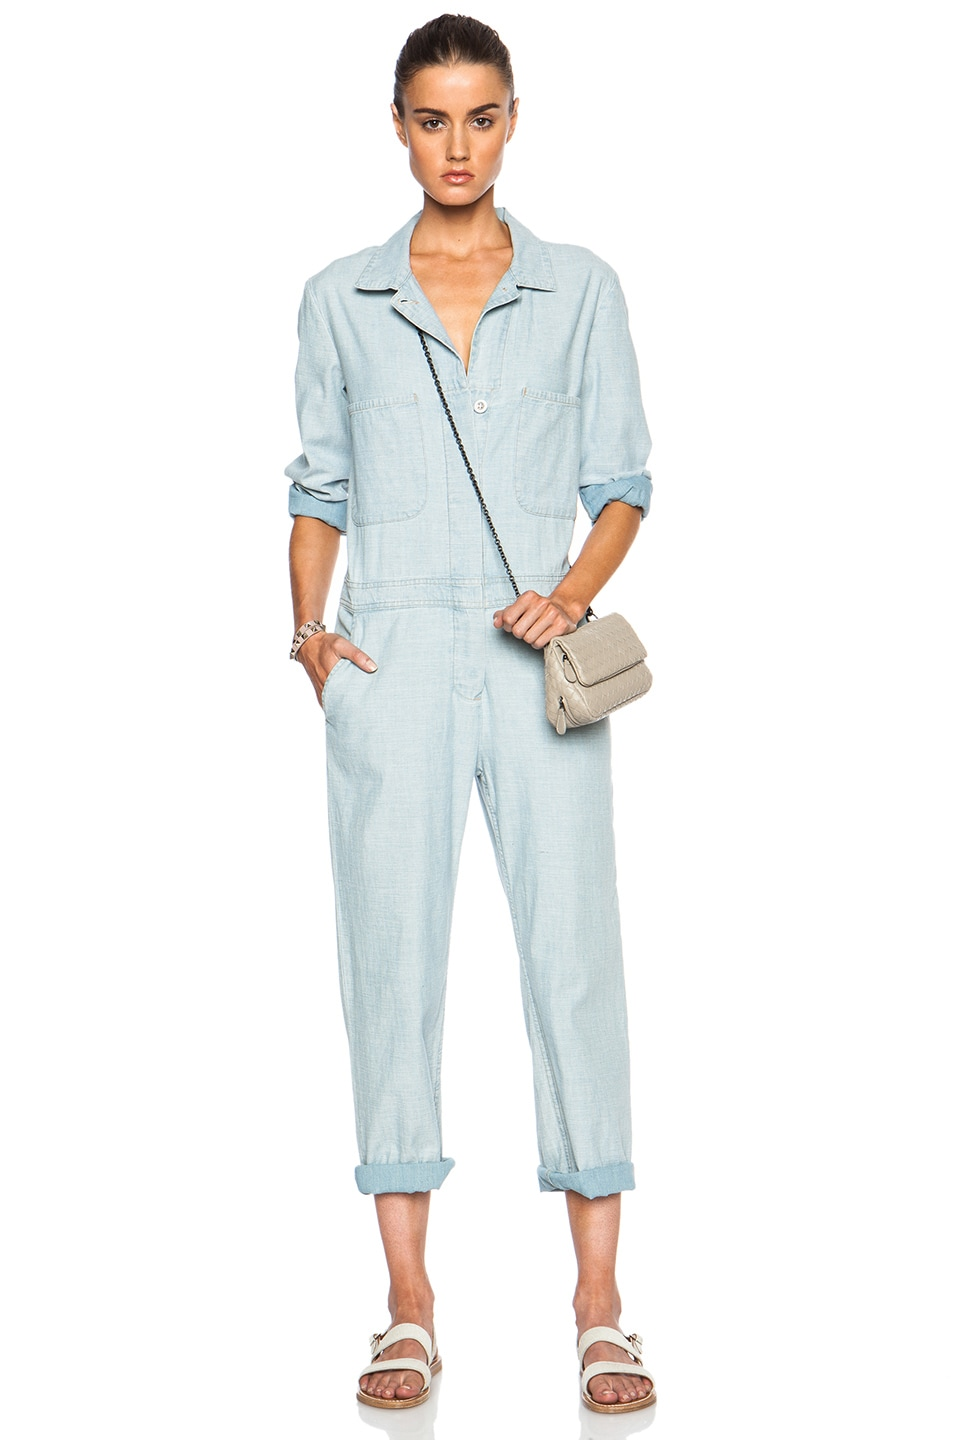 832206d46073 Image 1 of M.i.h Jeans Arconaut Overall Jumpsuit in Desert Denim